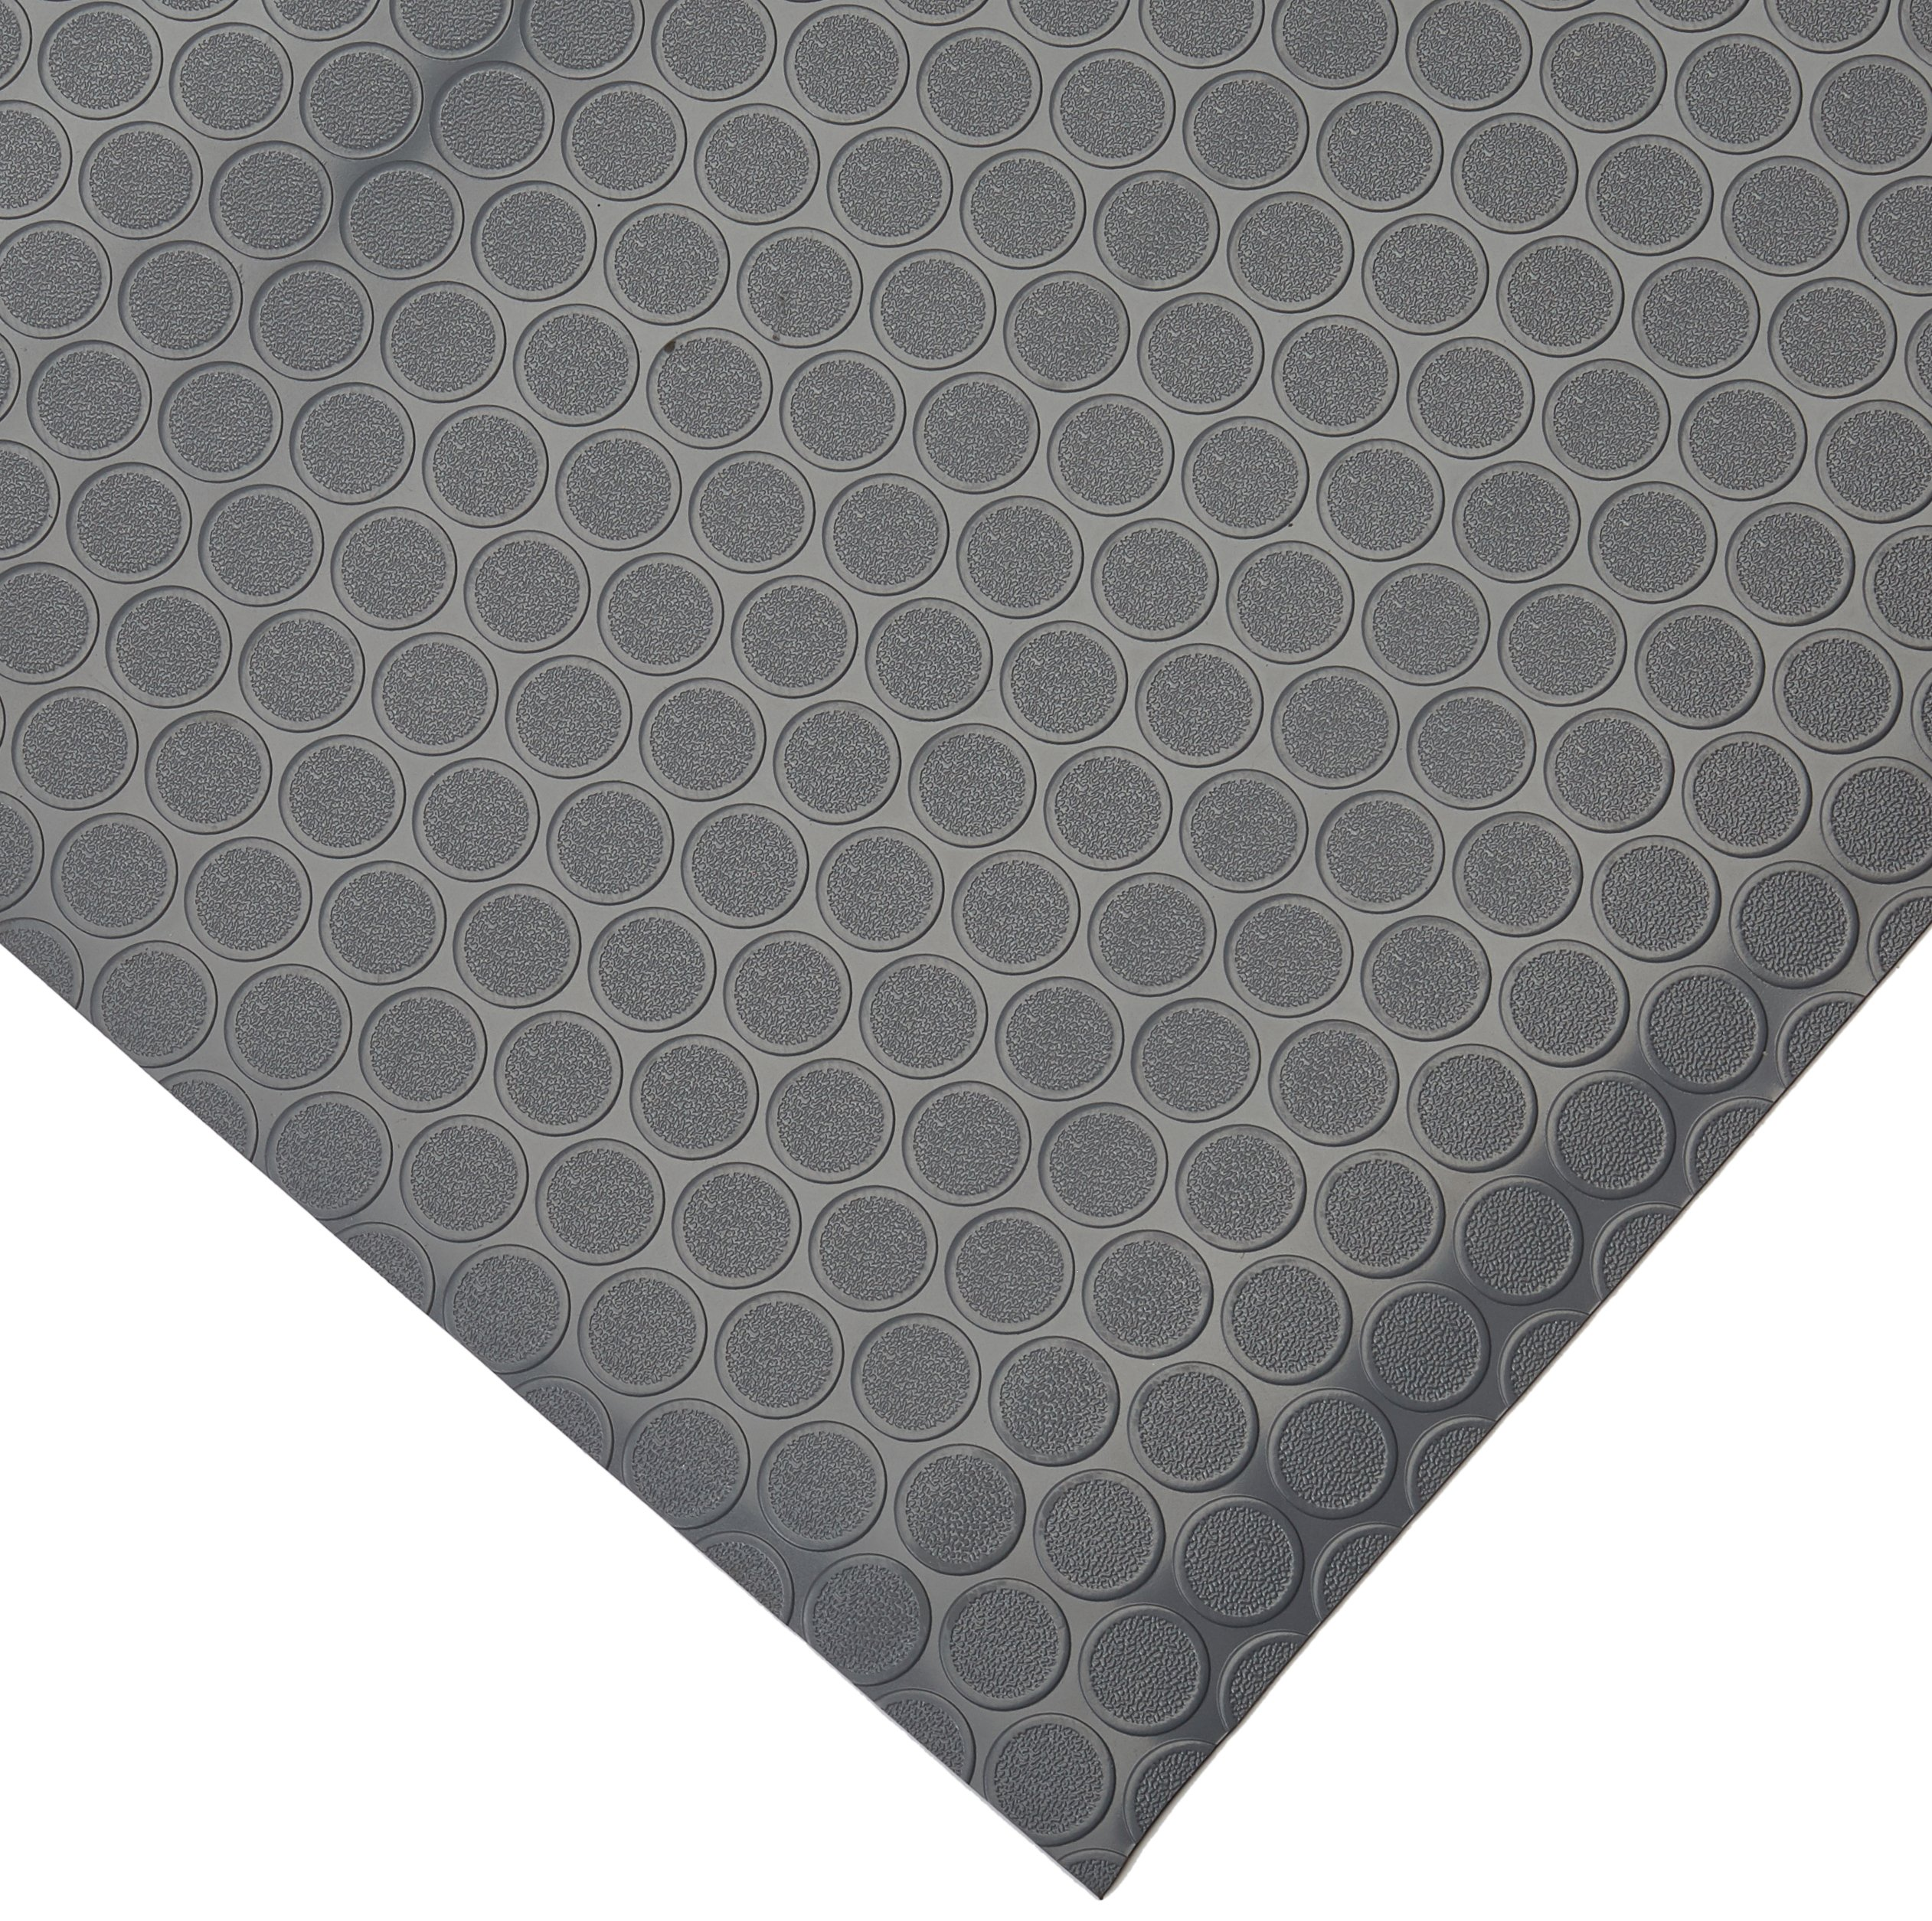 Rubber-Cal Coin-Grip Flooring and Rolling Mat, Dark Grey, 2mm x 4 x 12-Feet by Rubber-Cal